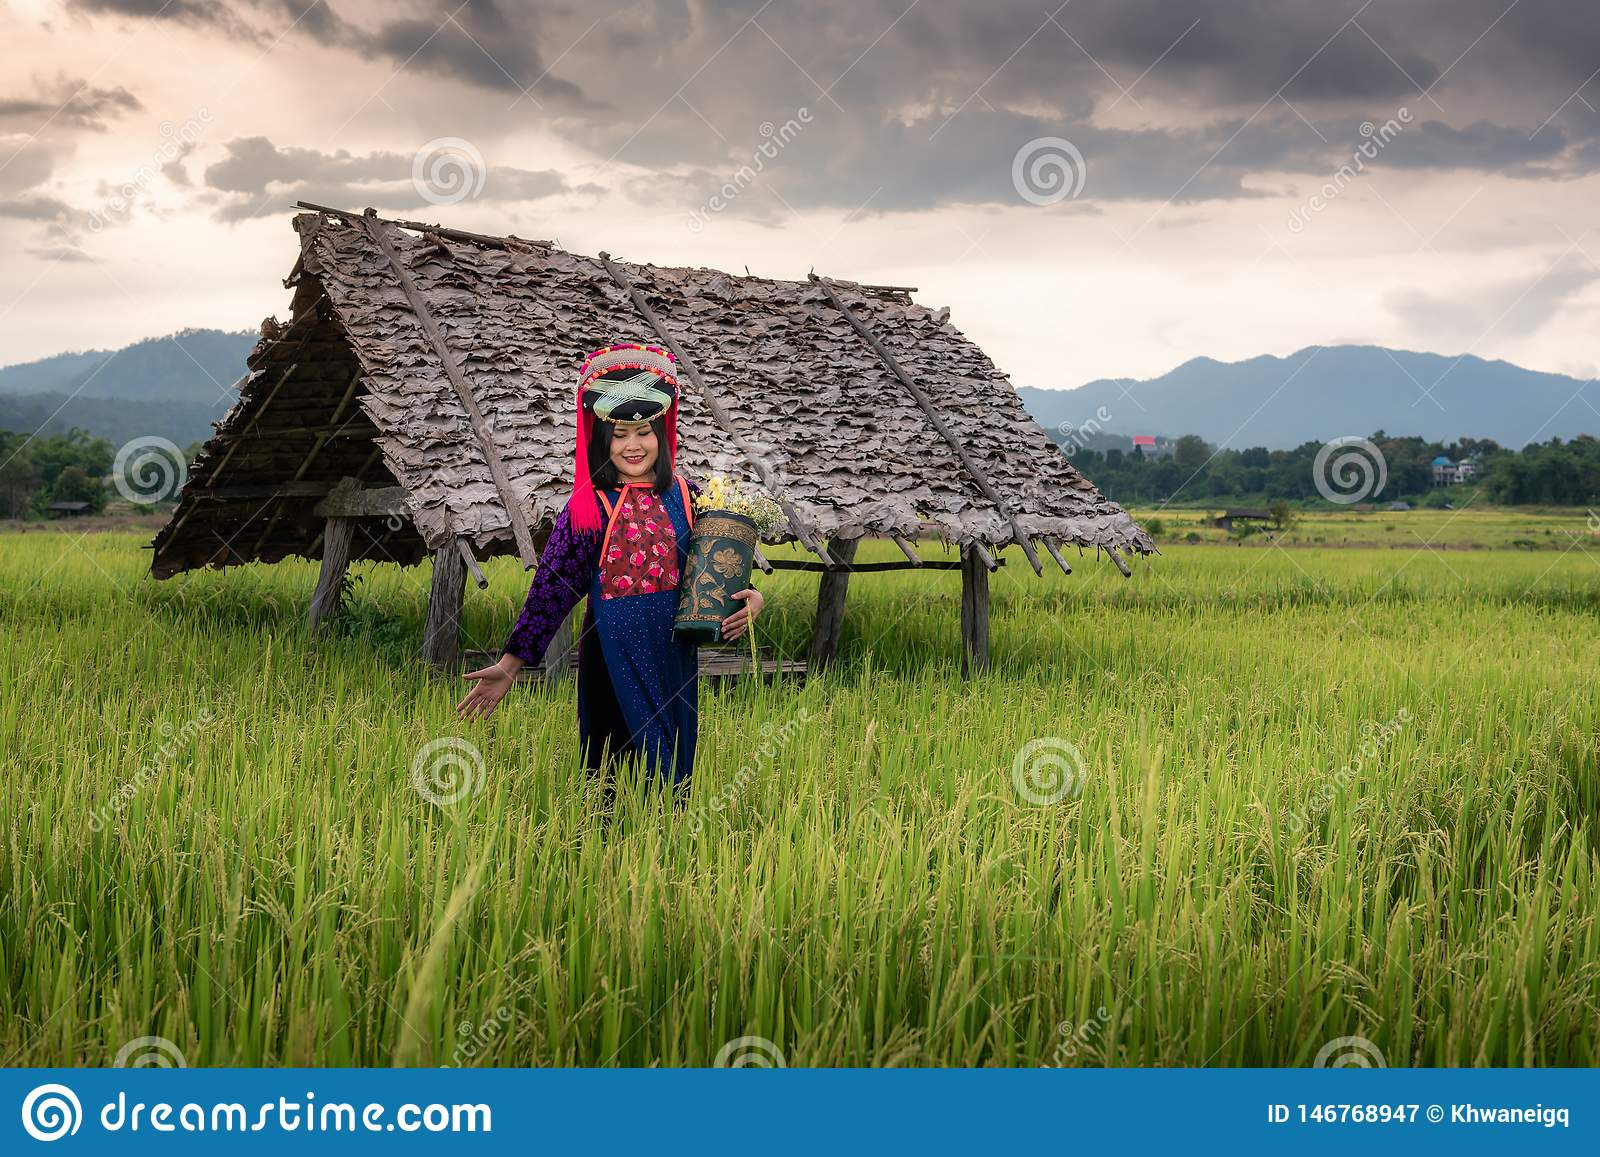 Portrait of Woman Tribal Lisu in Traditional Dress and Jewelry Costume in Rice Fields., Lifestyle of Hill Tribe Girl in The North